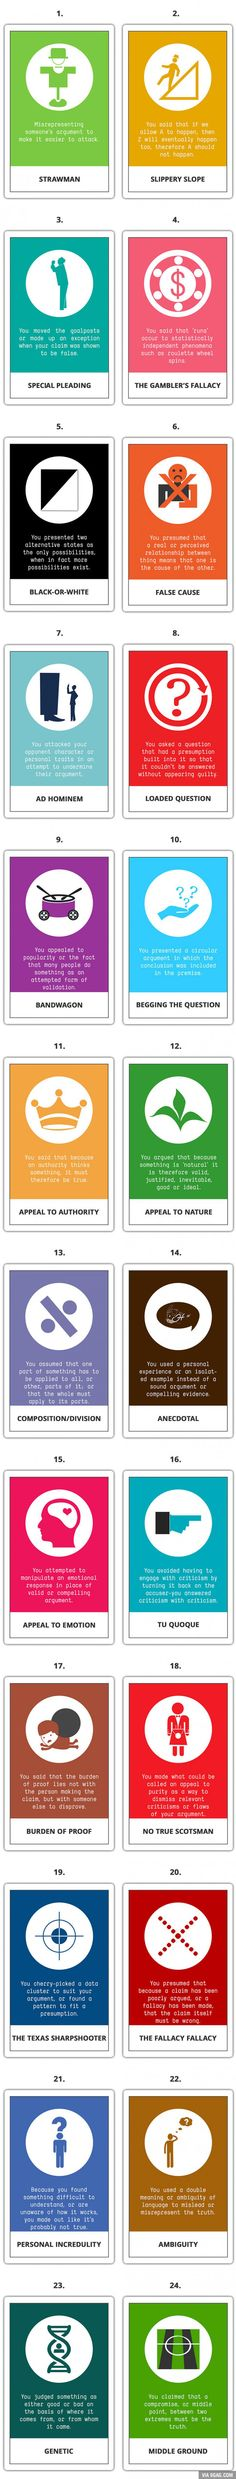 24 Most Common Logical Fallacies That You Should Know And Avoid